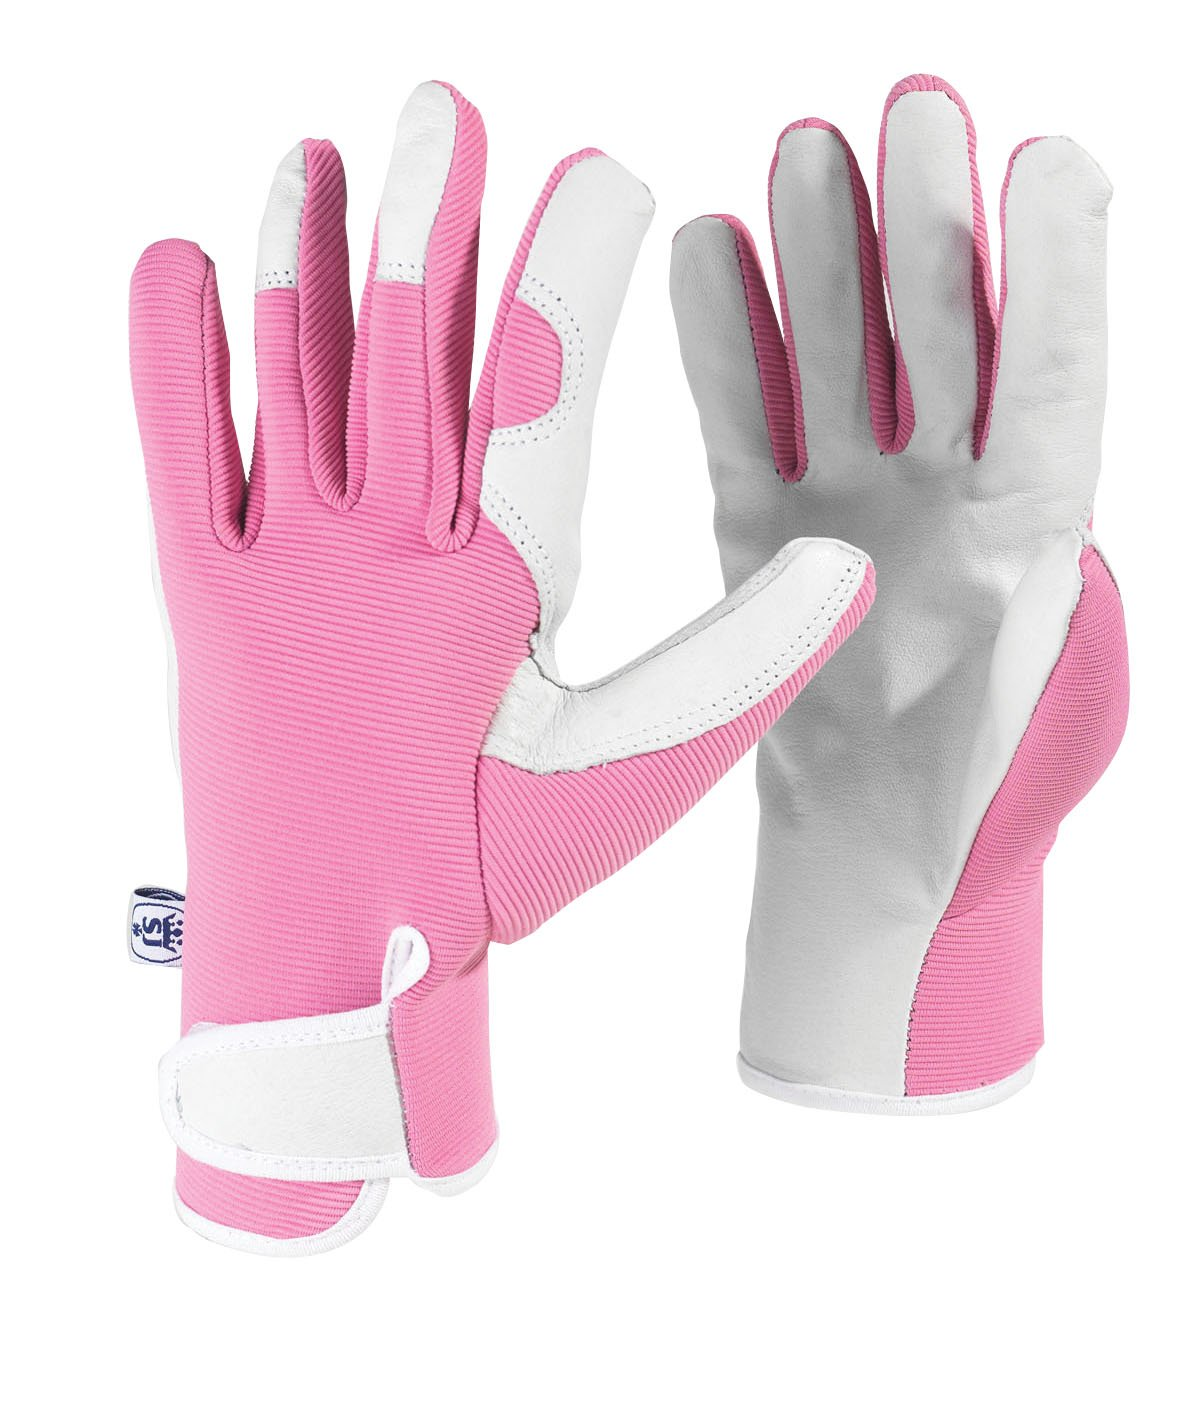 Spear & Jackson Kew Gardens Collection Ladies Small Leather Palm Gardening Gloves - Pink LSGLOVESKEW